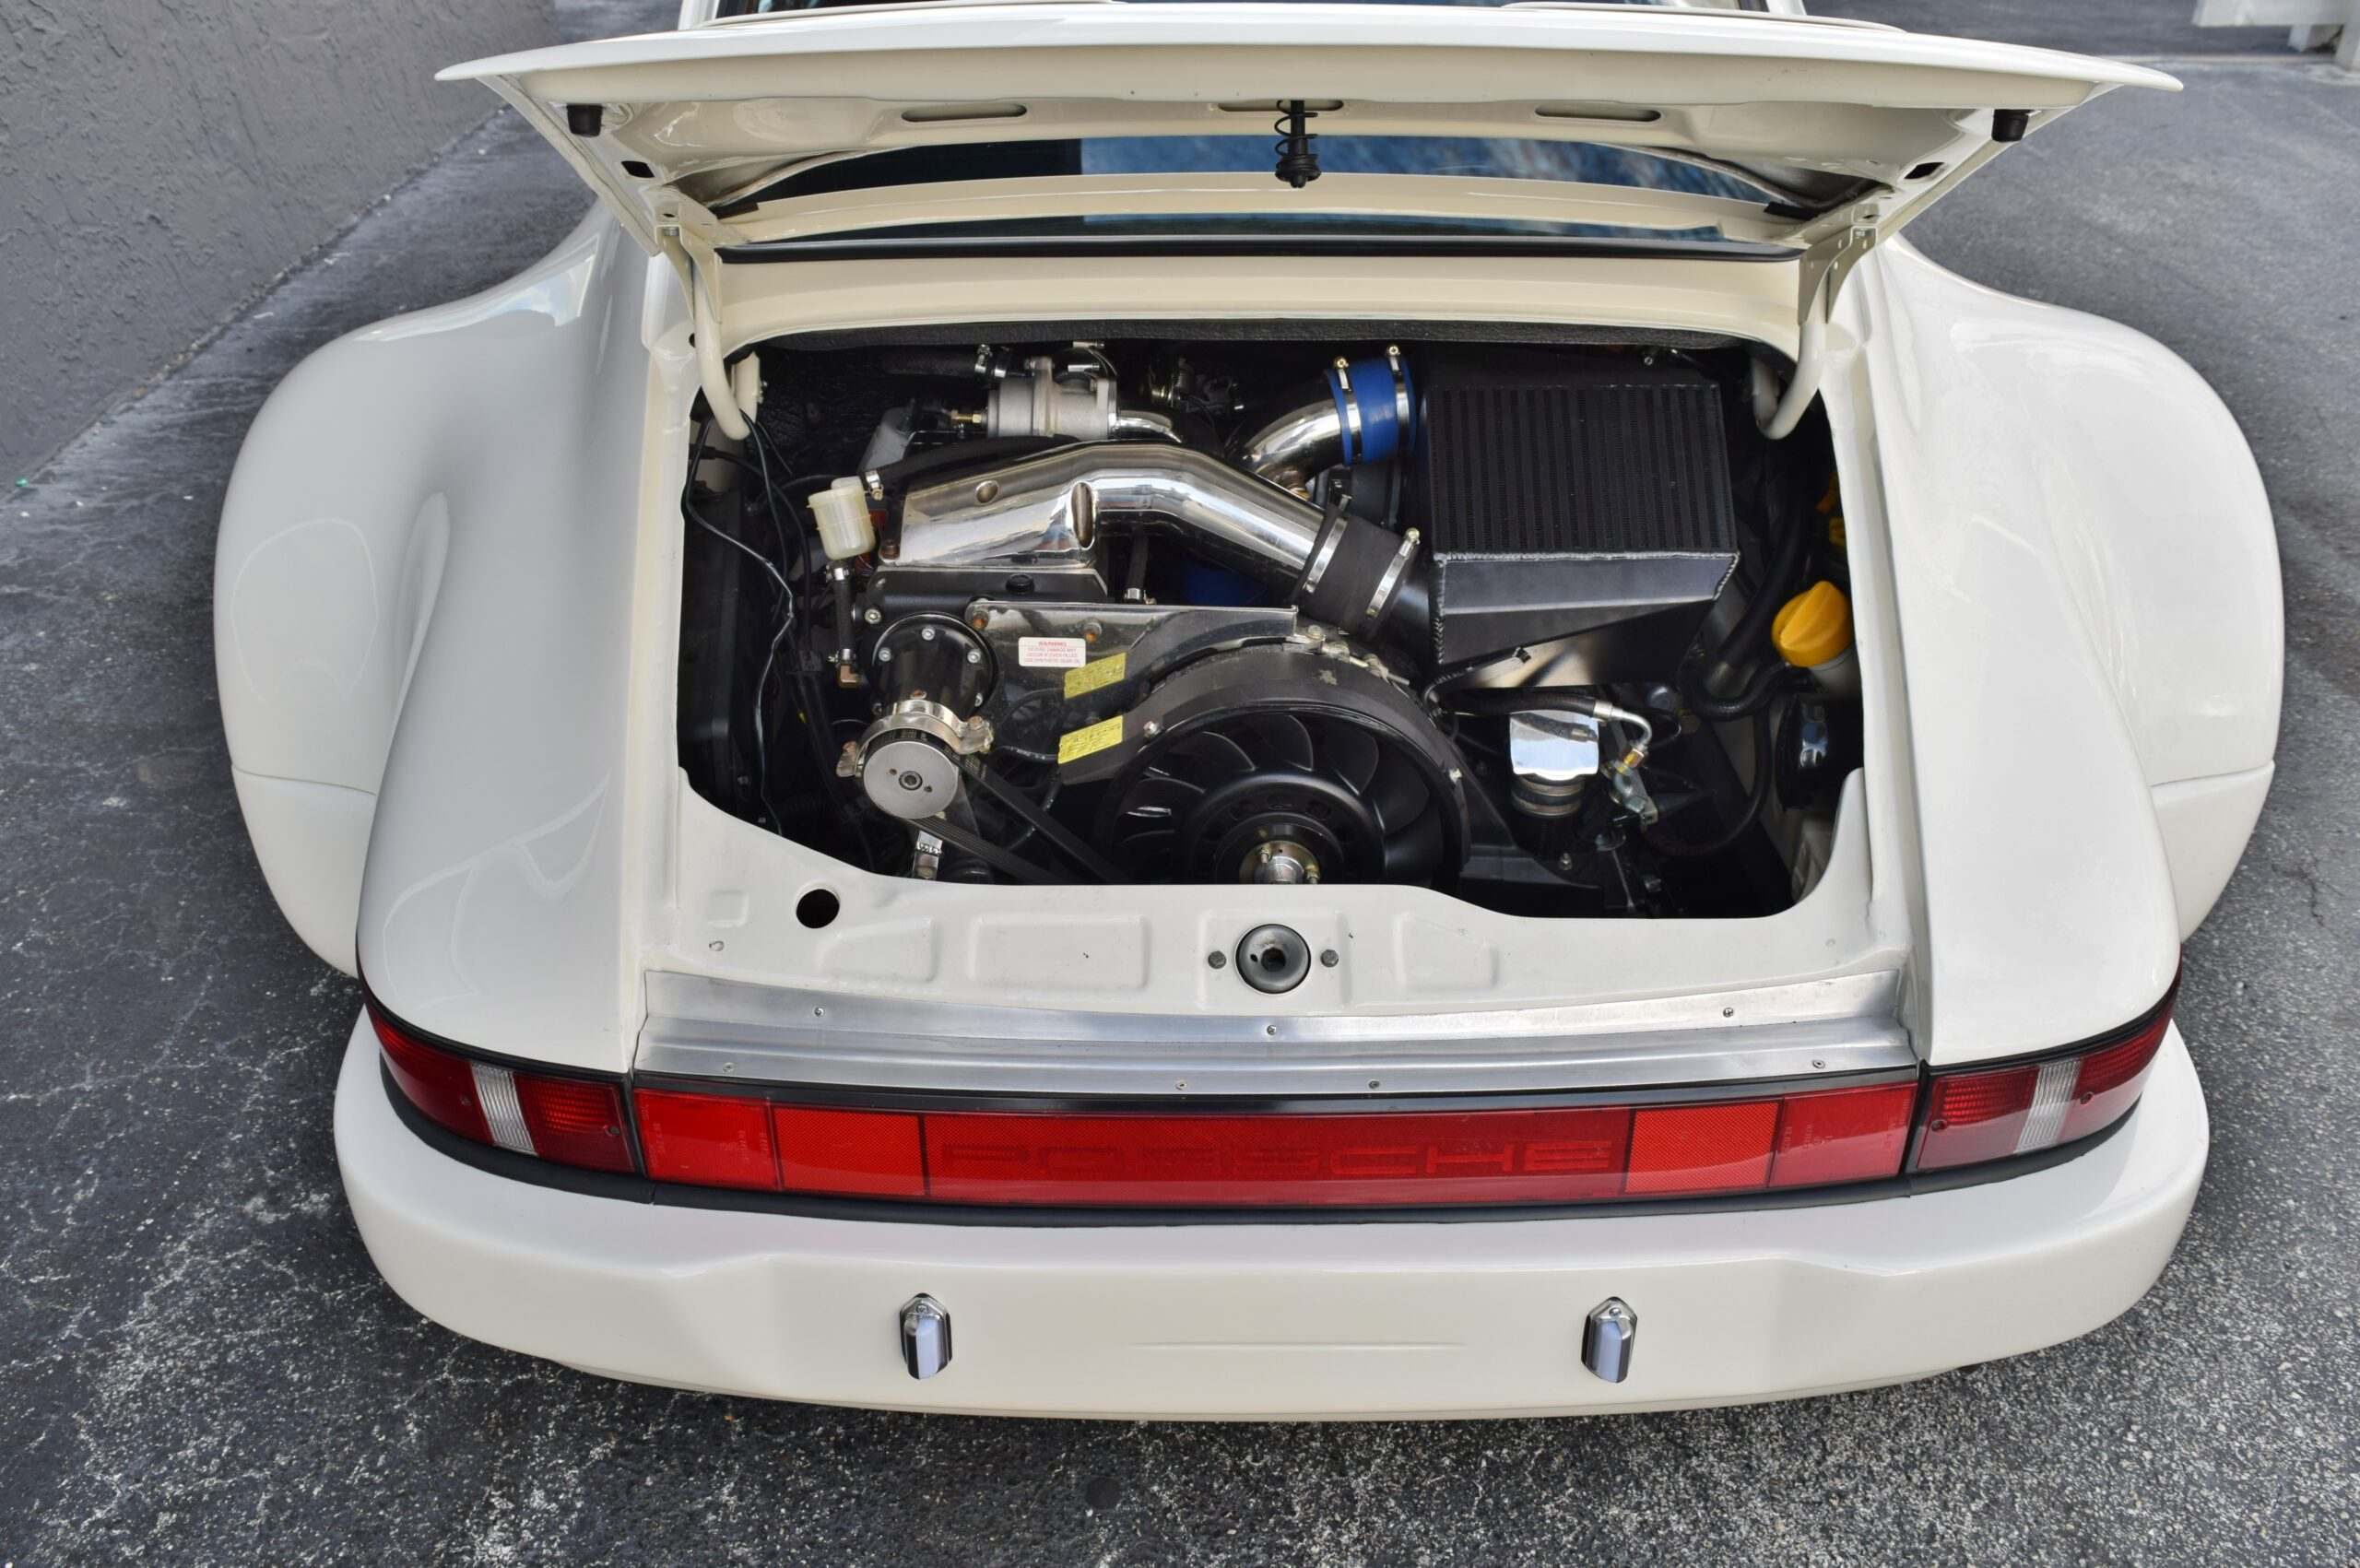 1991 Porsche 911 964 Need for Speed RWB RWB Widebody Smooth Fender-SEMA show car-Backdated- SUPERCHARGED- Fully Sorted